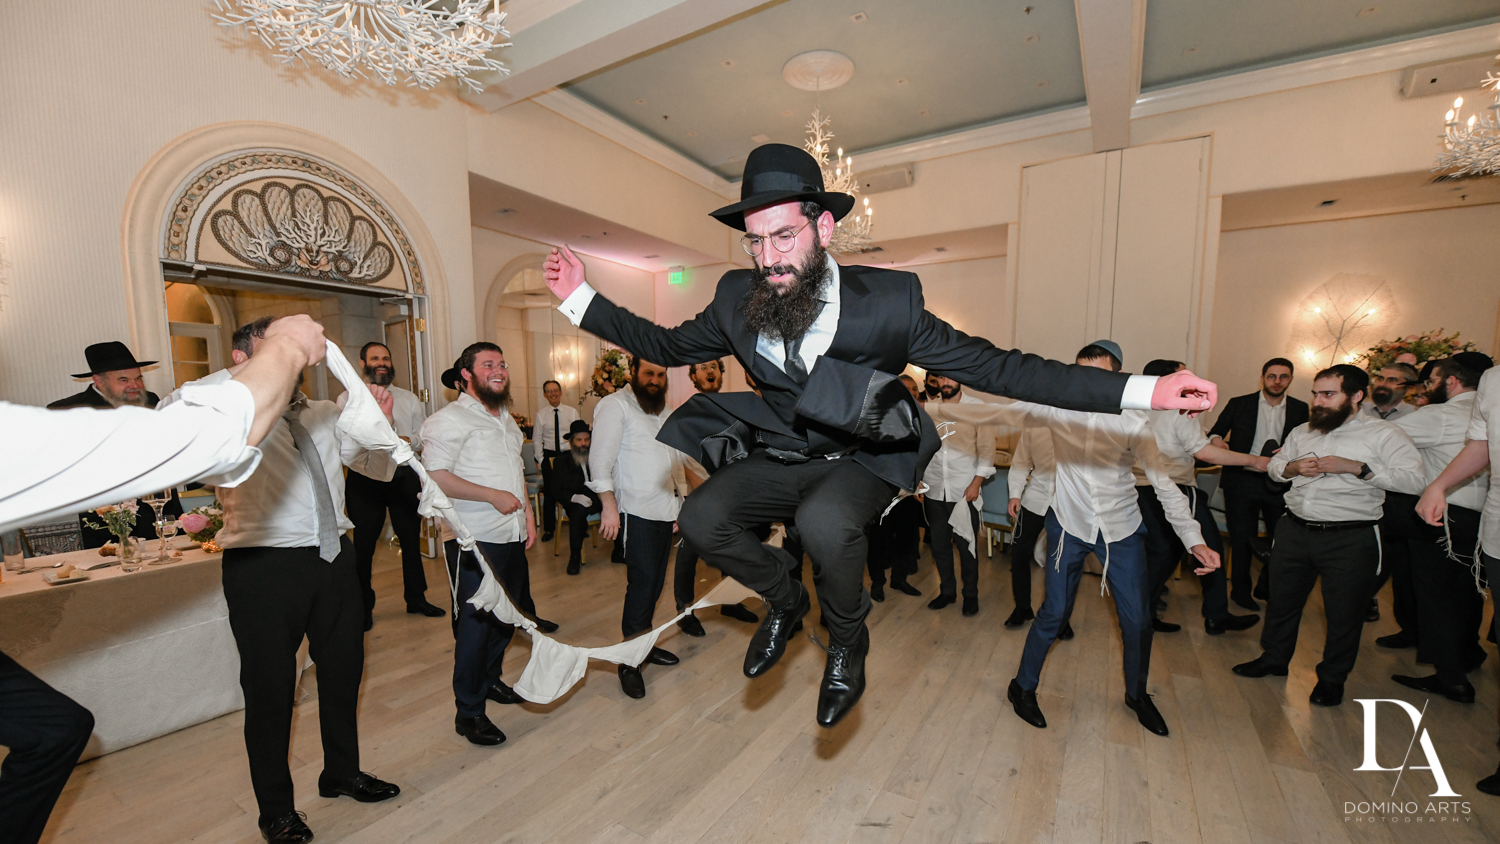 fun party pictures at Jewish Orthodox Wedding in Palm Beach by Domino Arts Photography